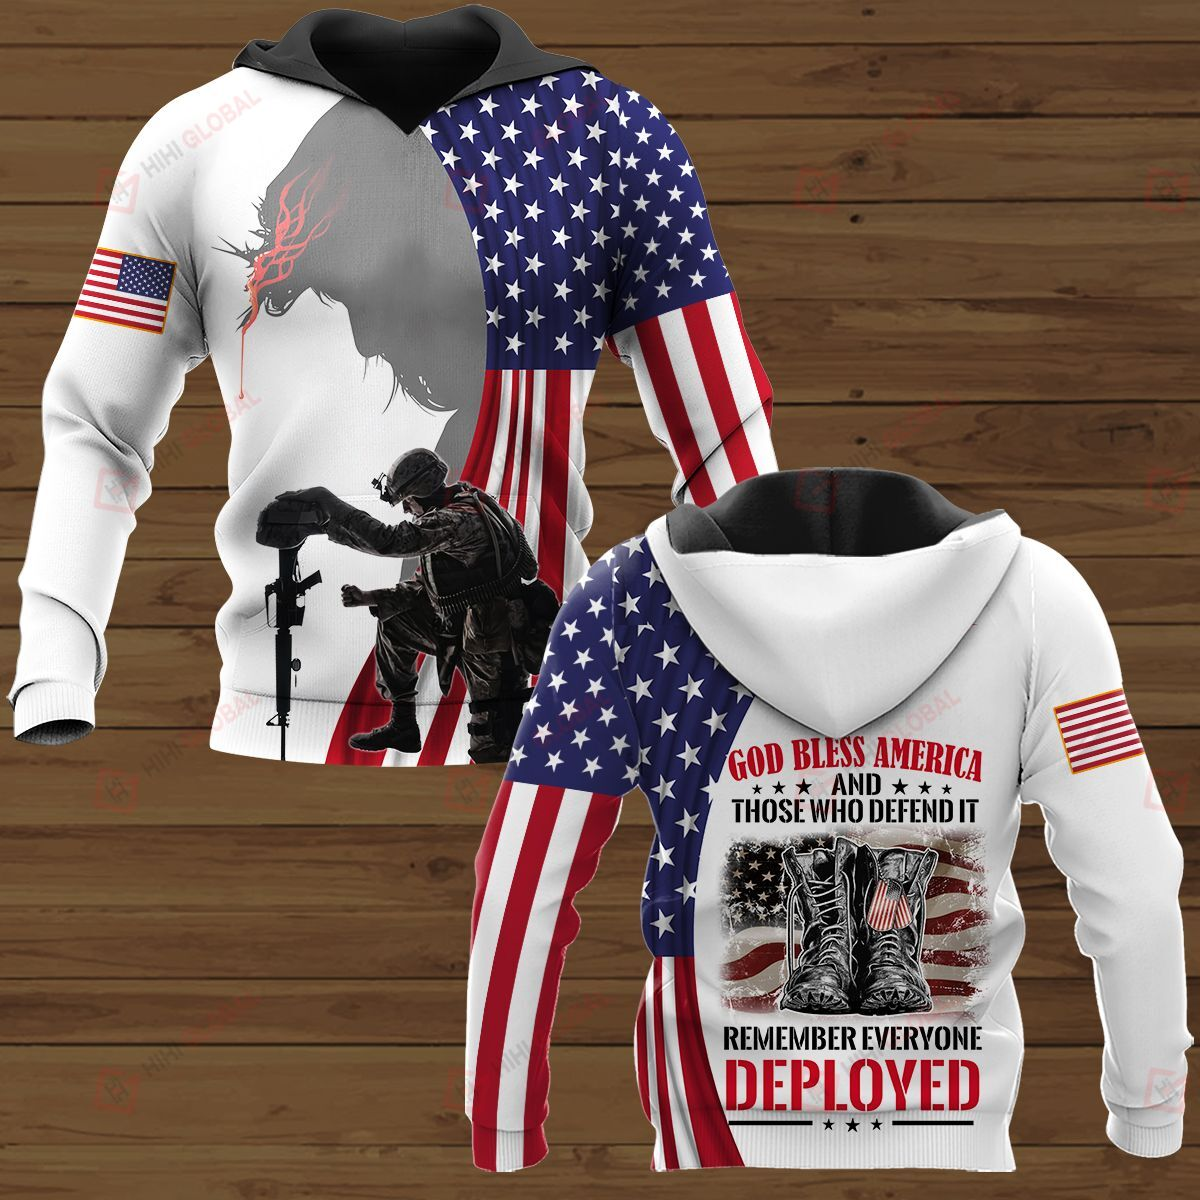 God bless America and those who defend it remember everyone employed 3D Shirt